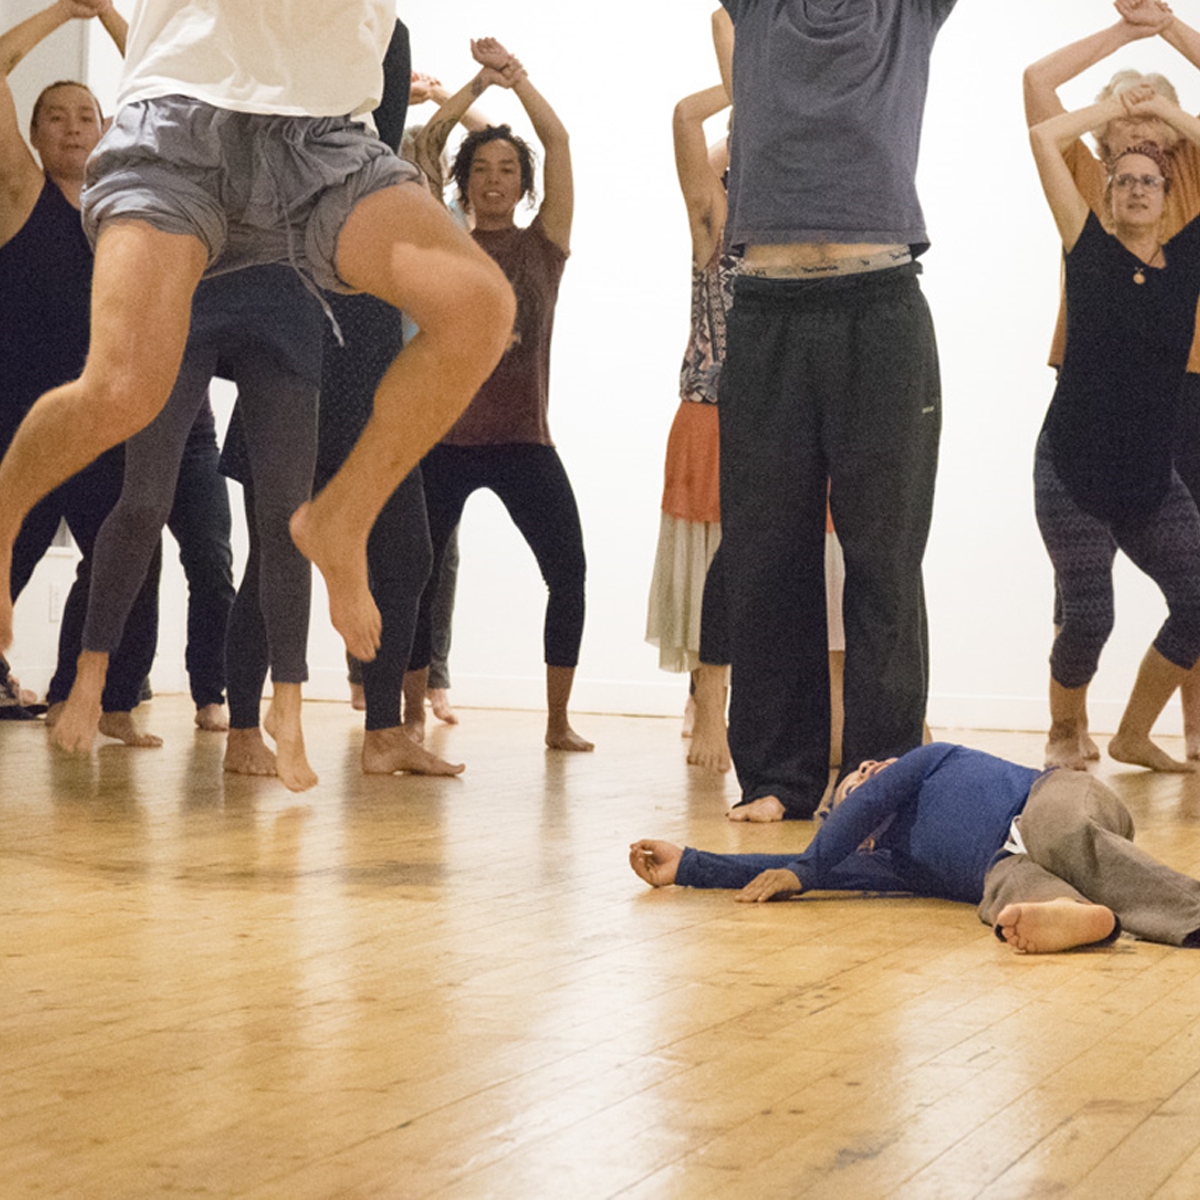 Artist Residencies. A group of people dancing in the photo.